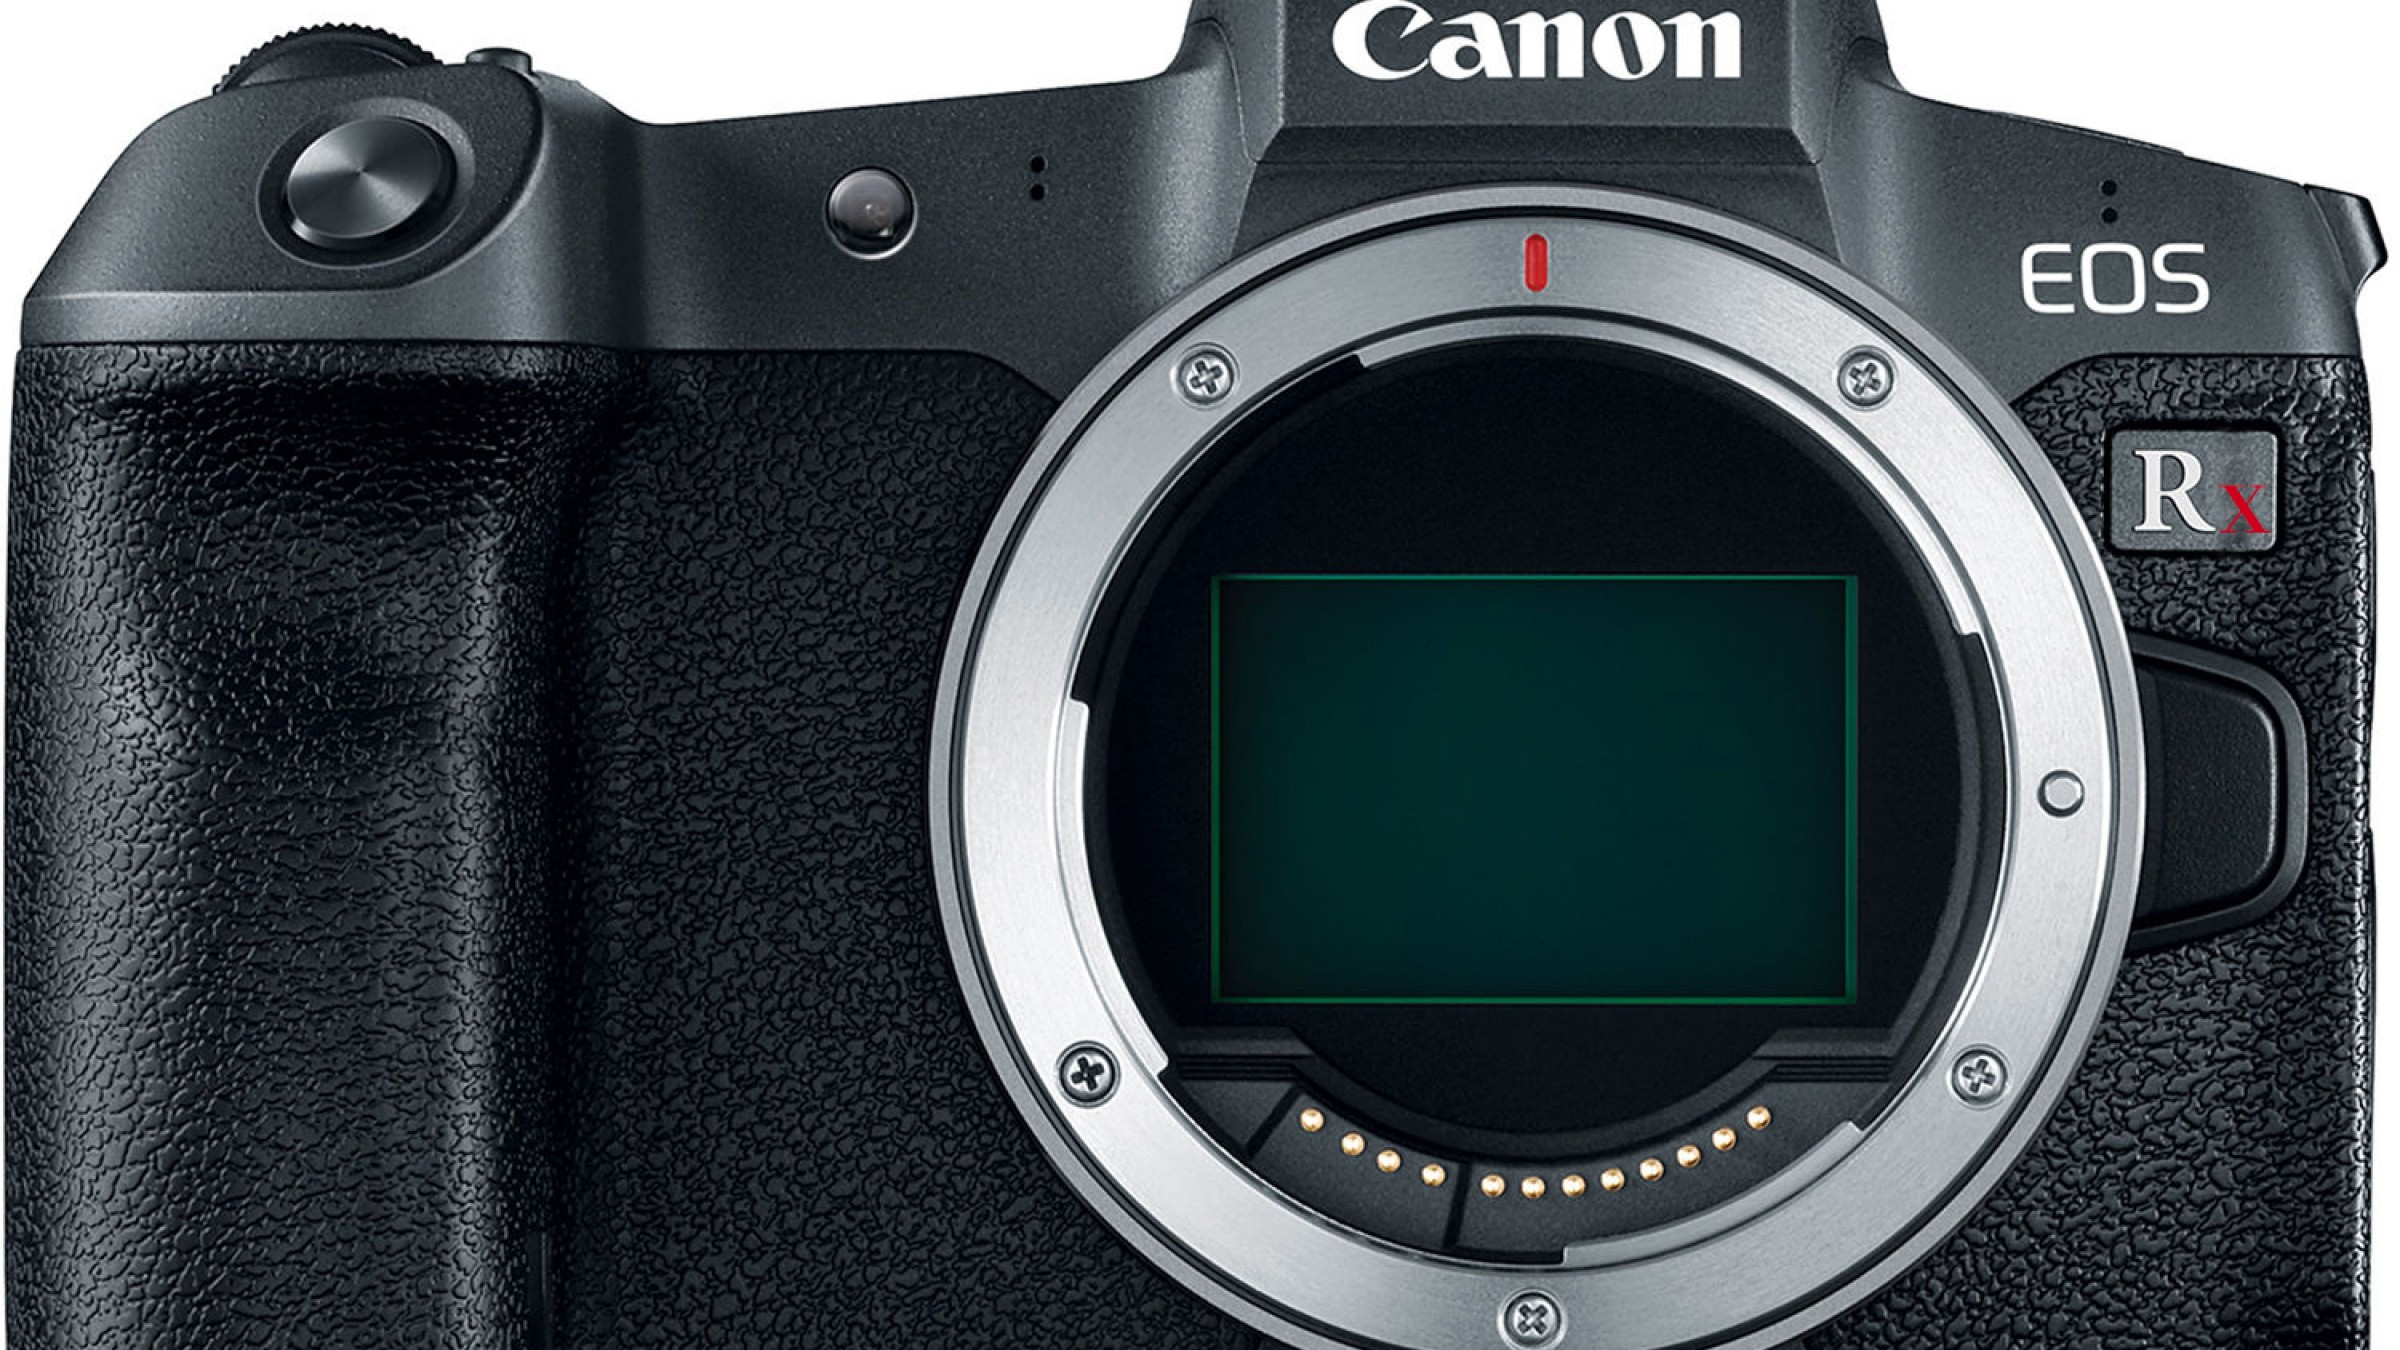 Rumor: Canon Ahead Of Schedule With New EOS-R Camera